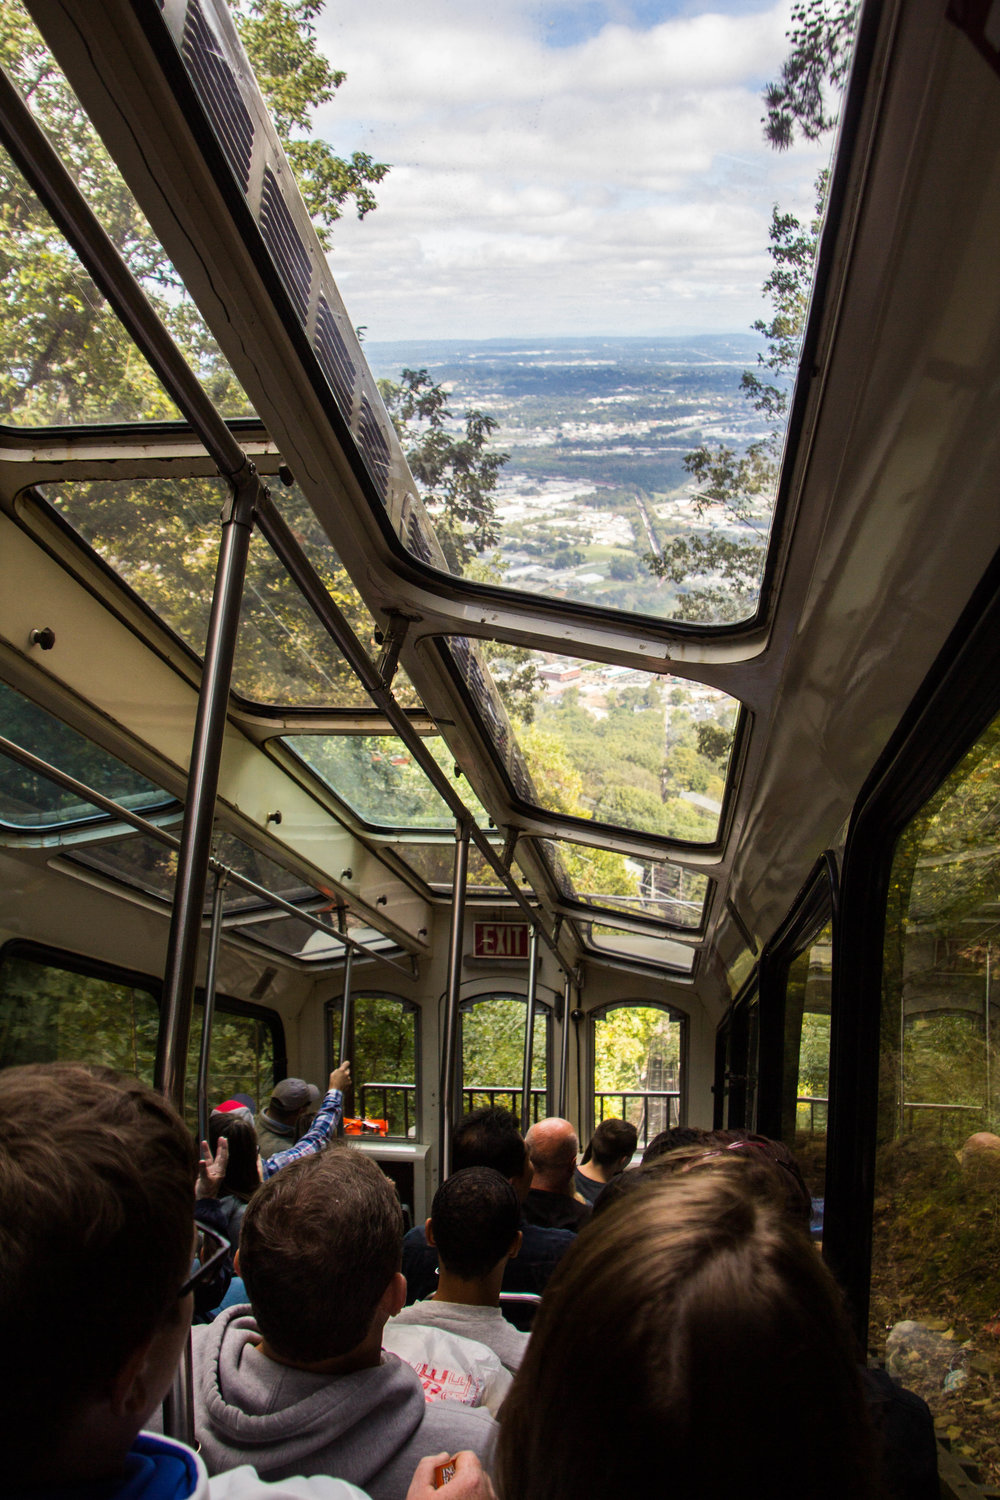 chattanooga-incline-railway-12.jpg